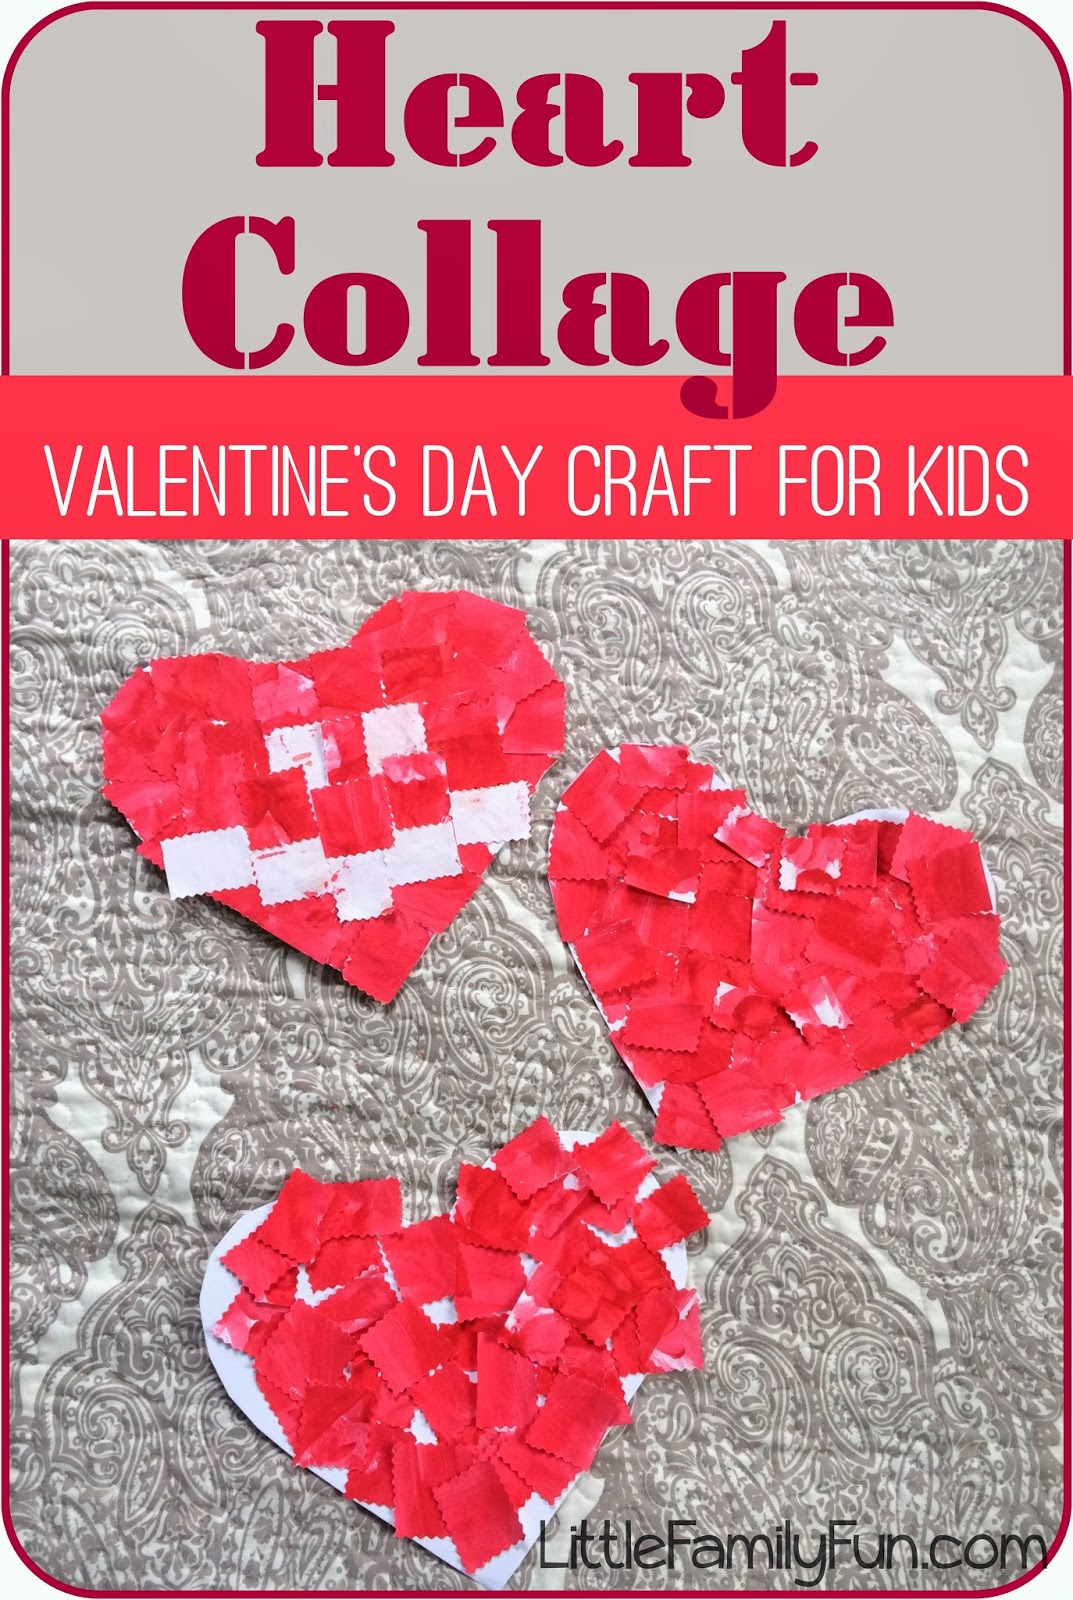 http://www.littlefamilyfun.com/2014/02/heart-collage-valentines-day-craft.html